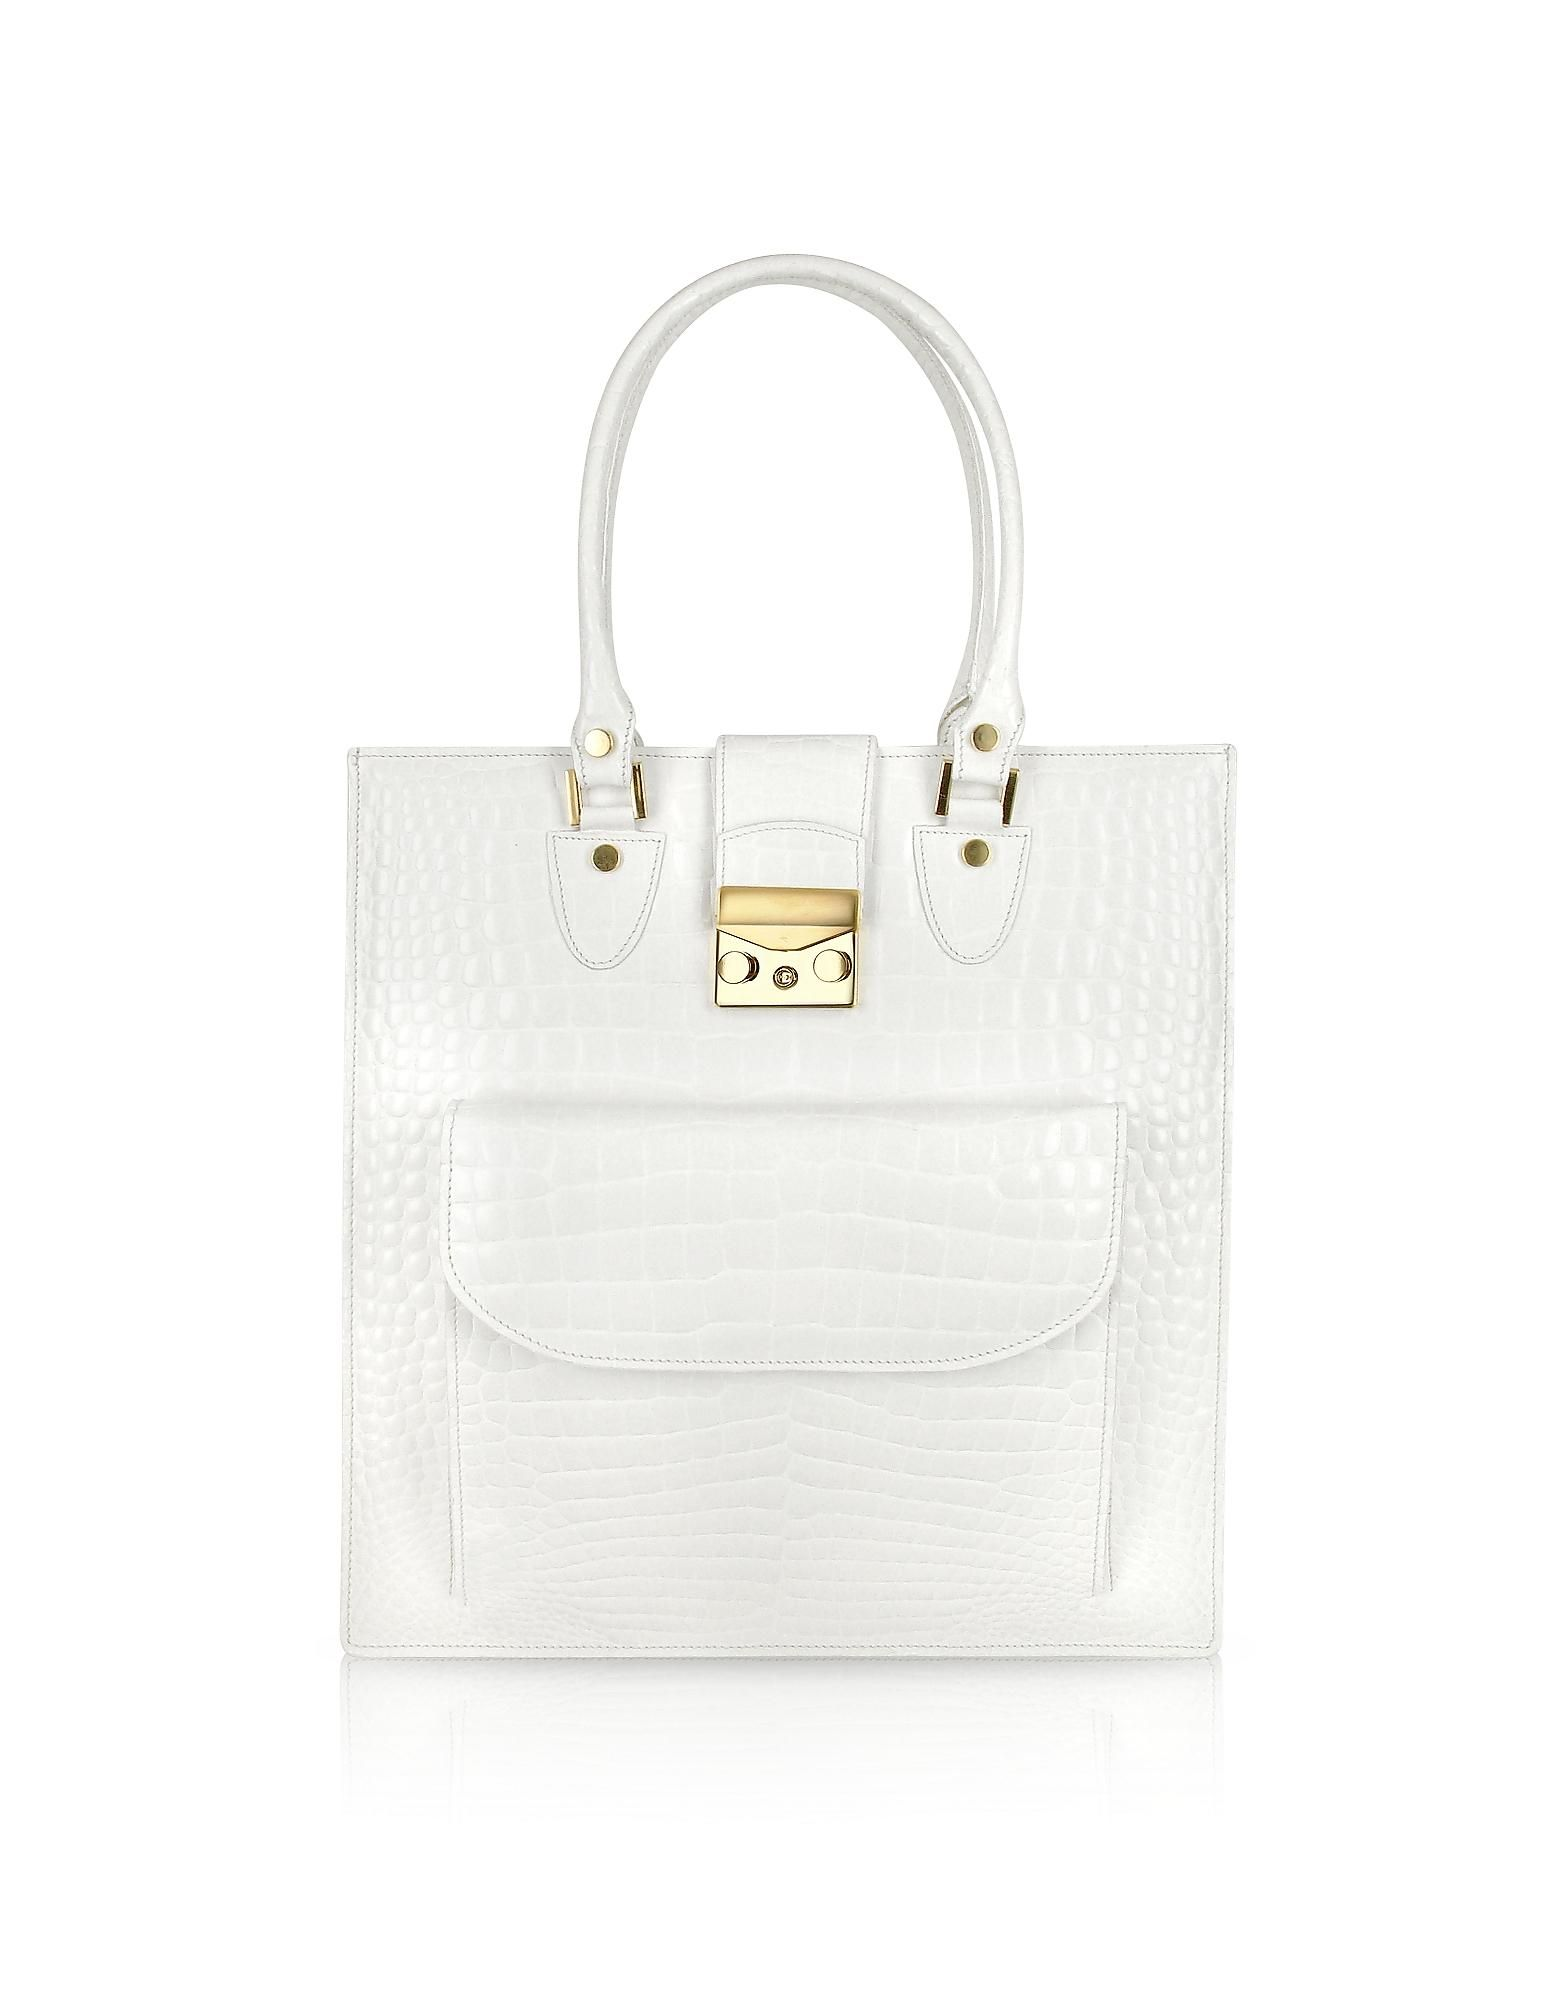 White Croco Stamped Leather Tote Bag White L A P A